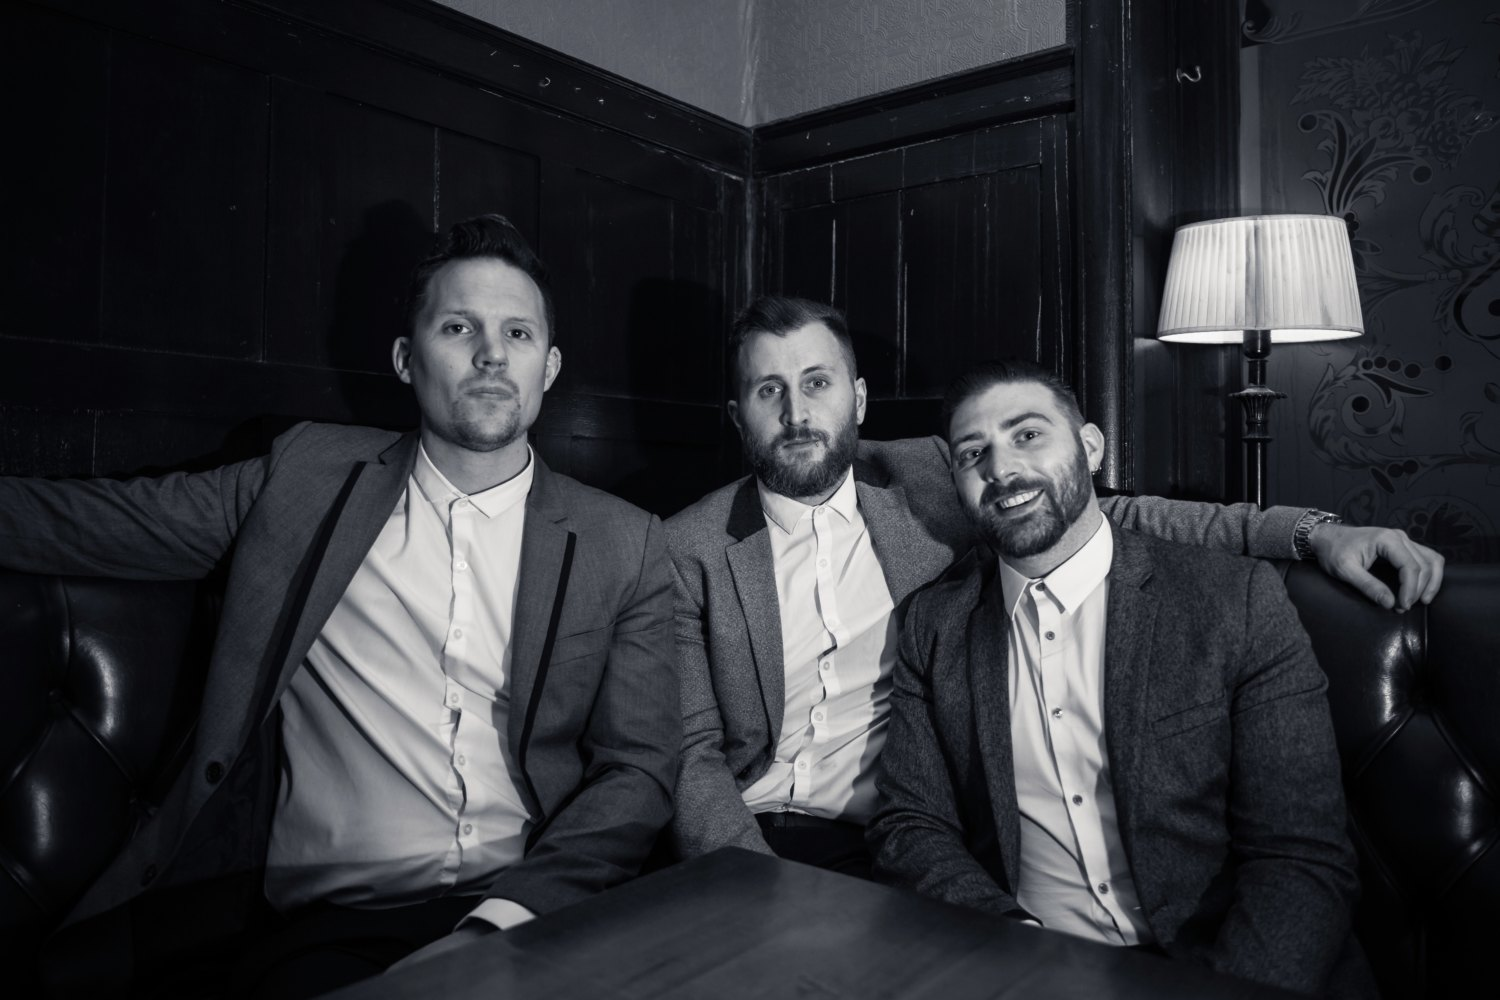 Three men sat on a couch